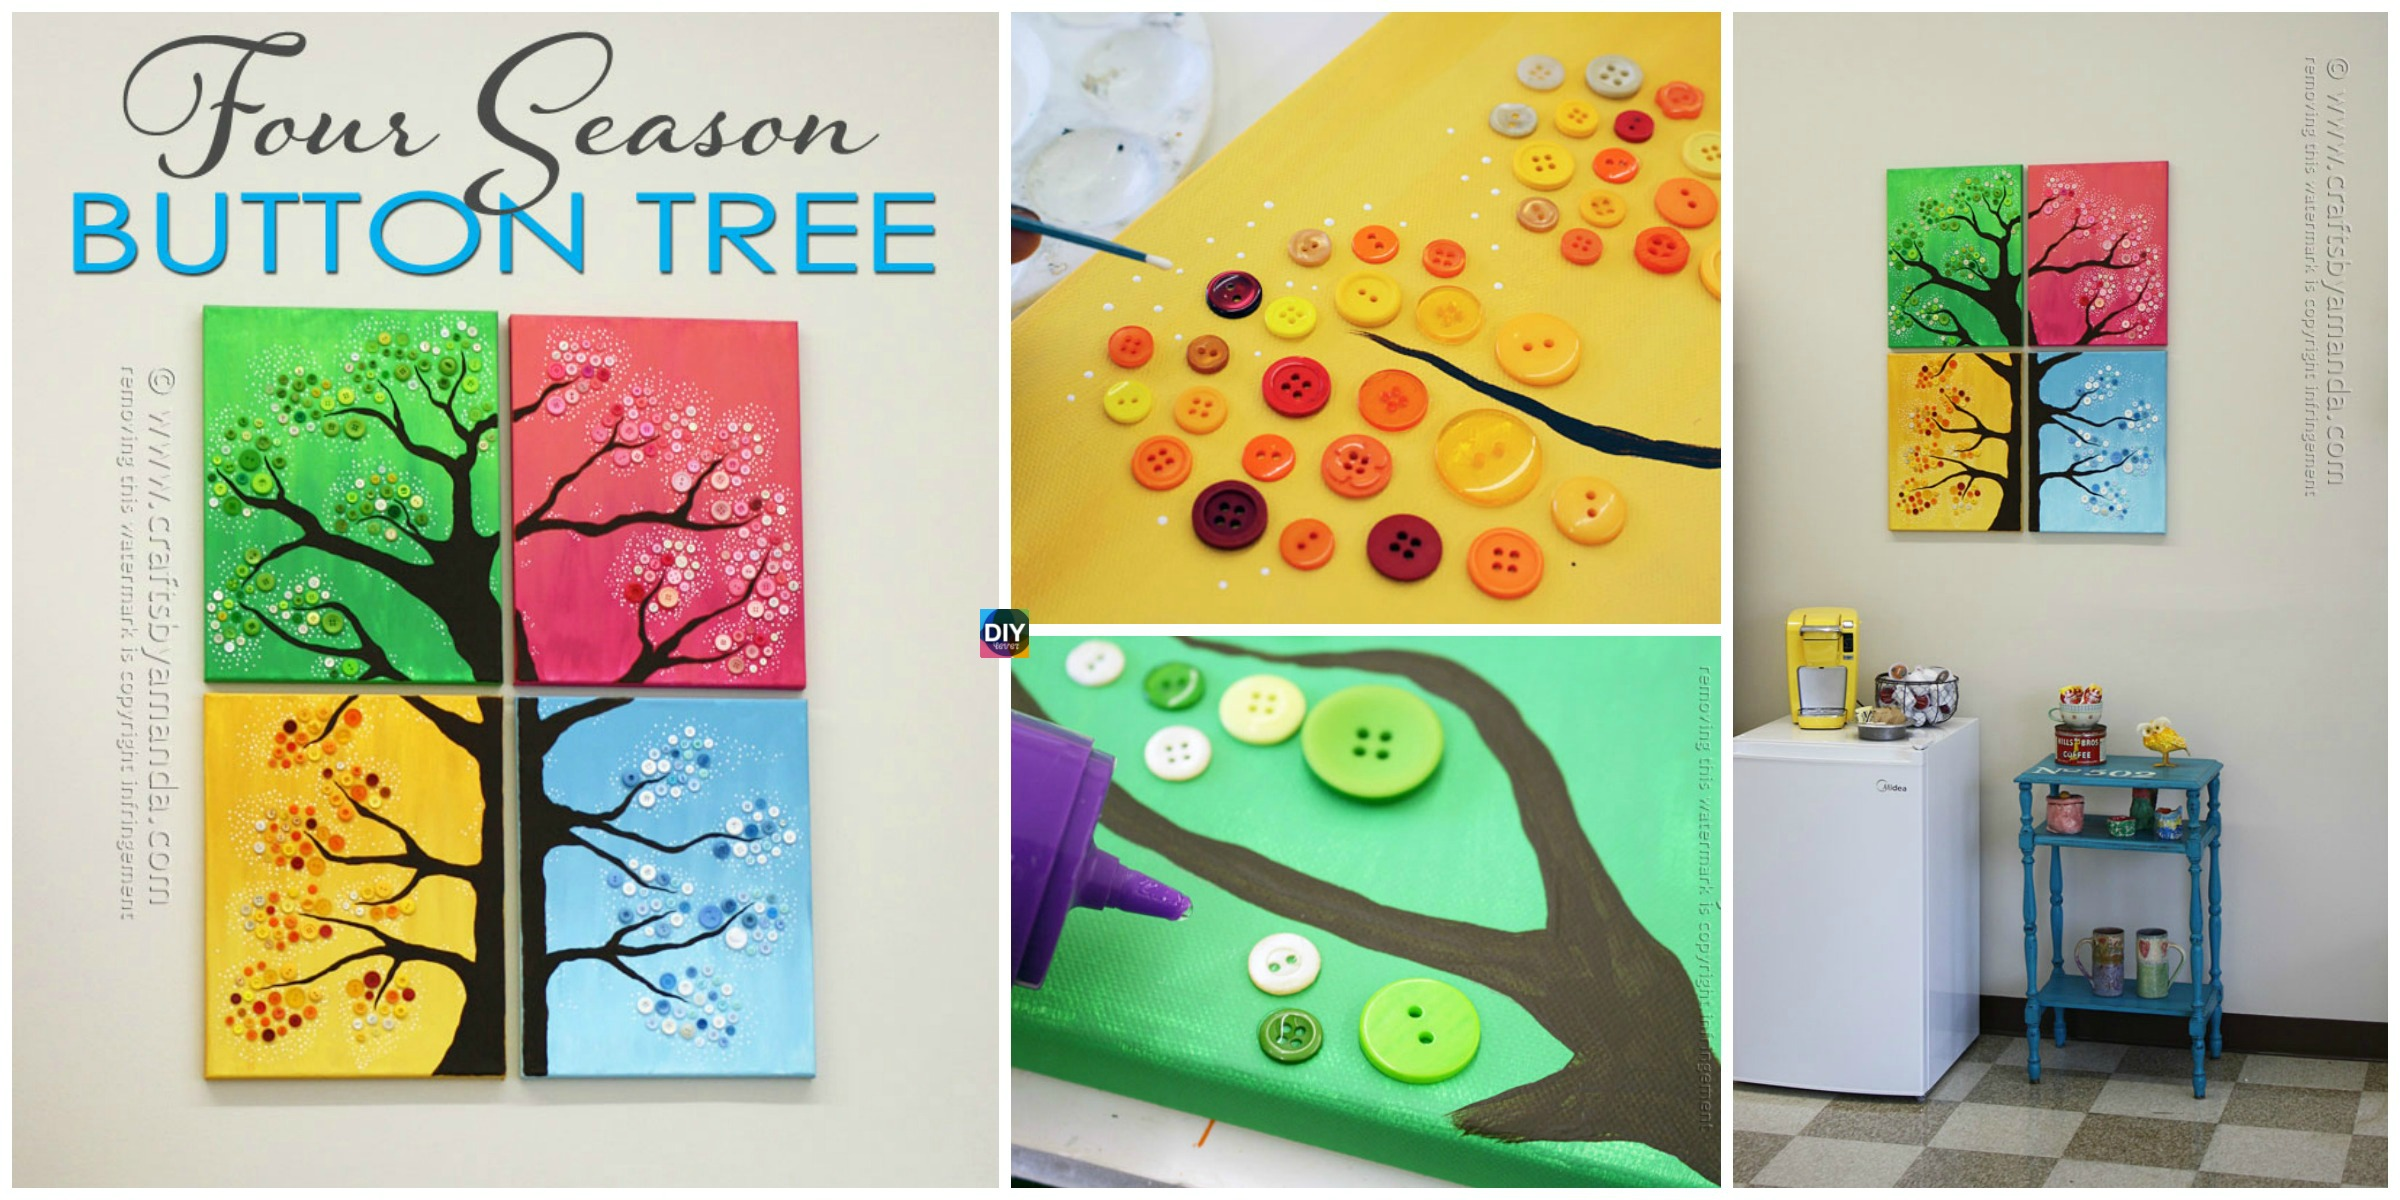 4 Seasons Button Tree Wall Art DIY Tutorial